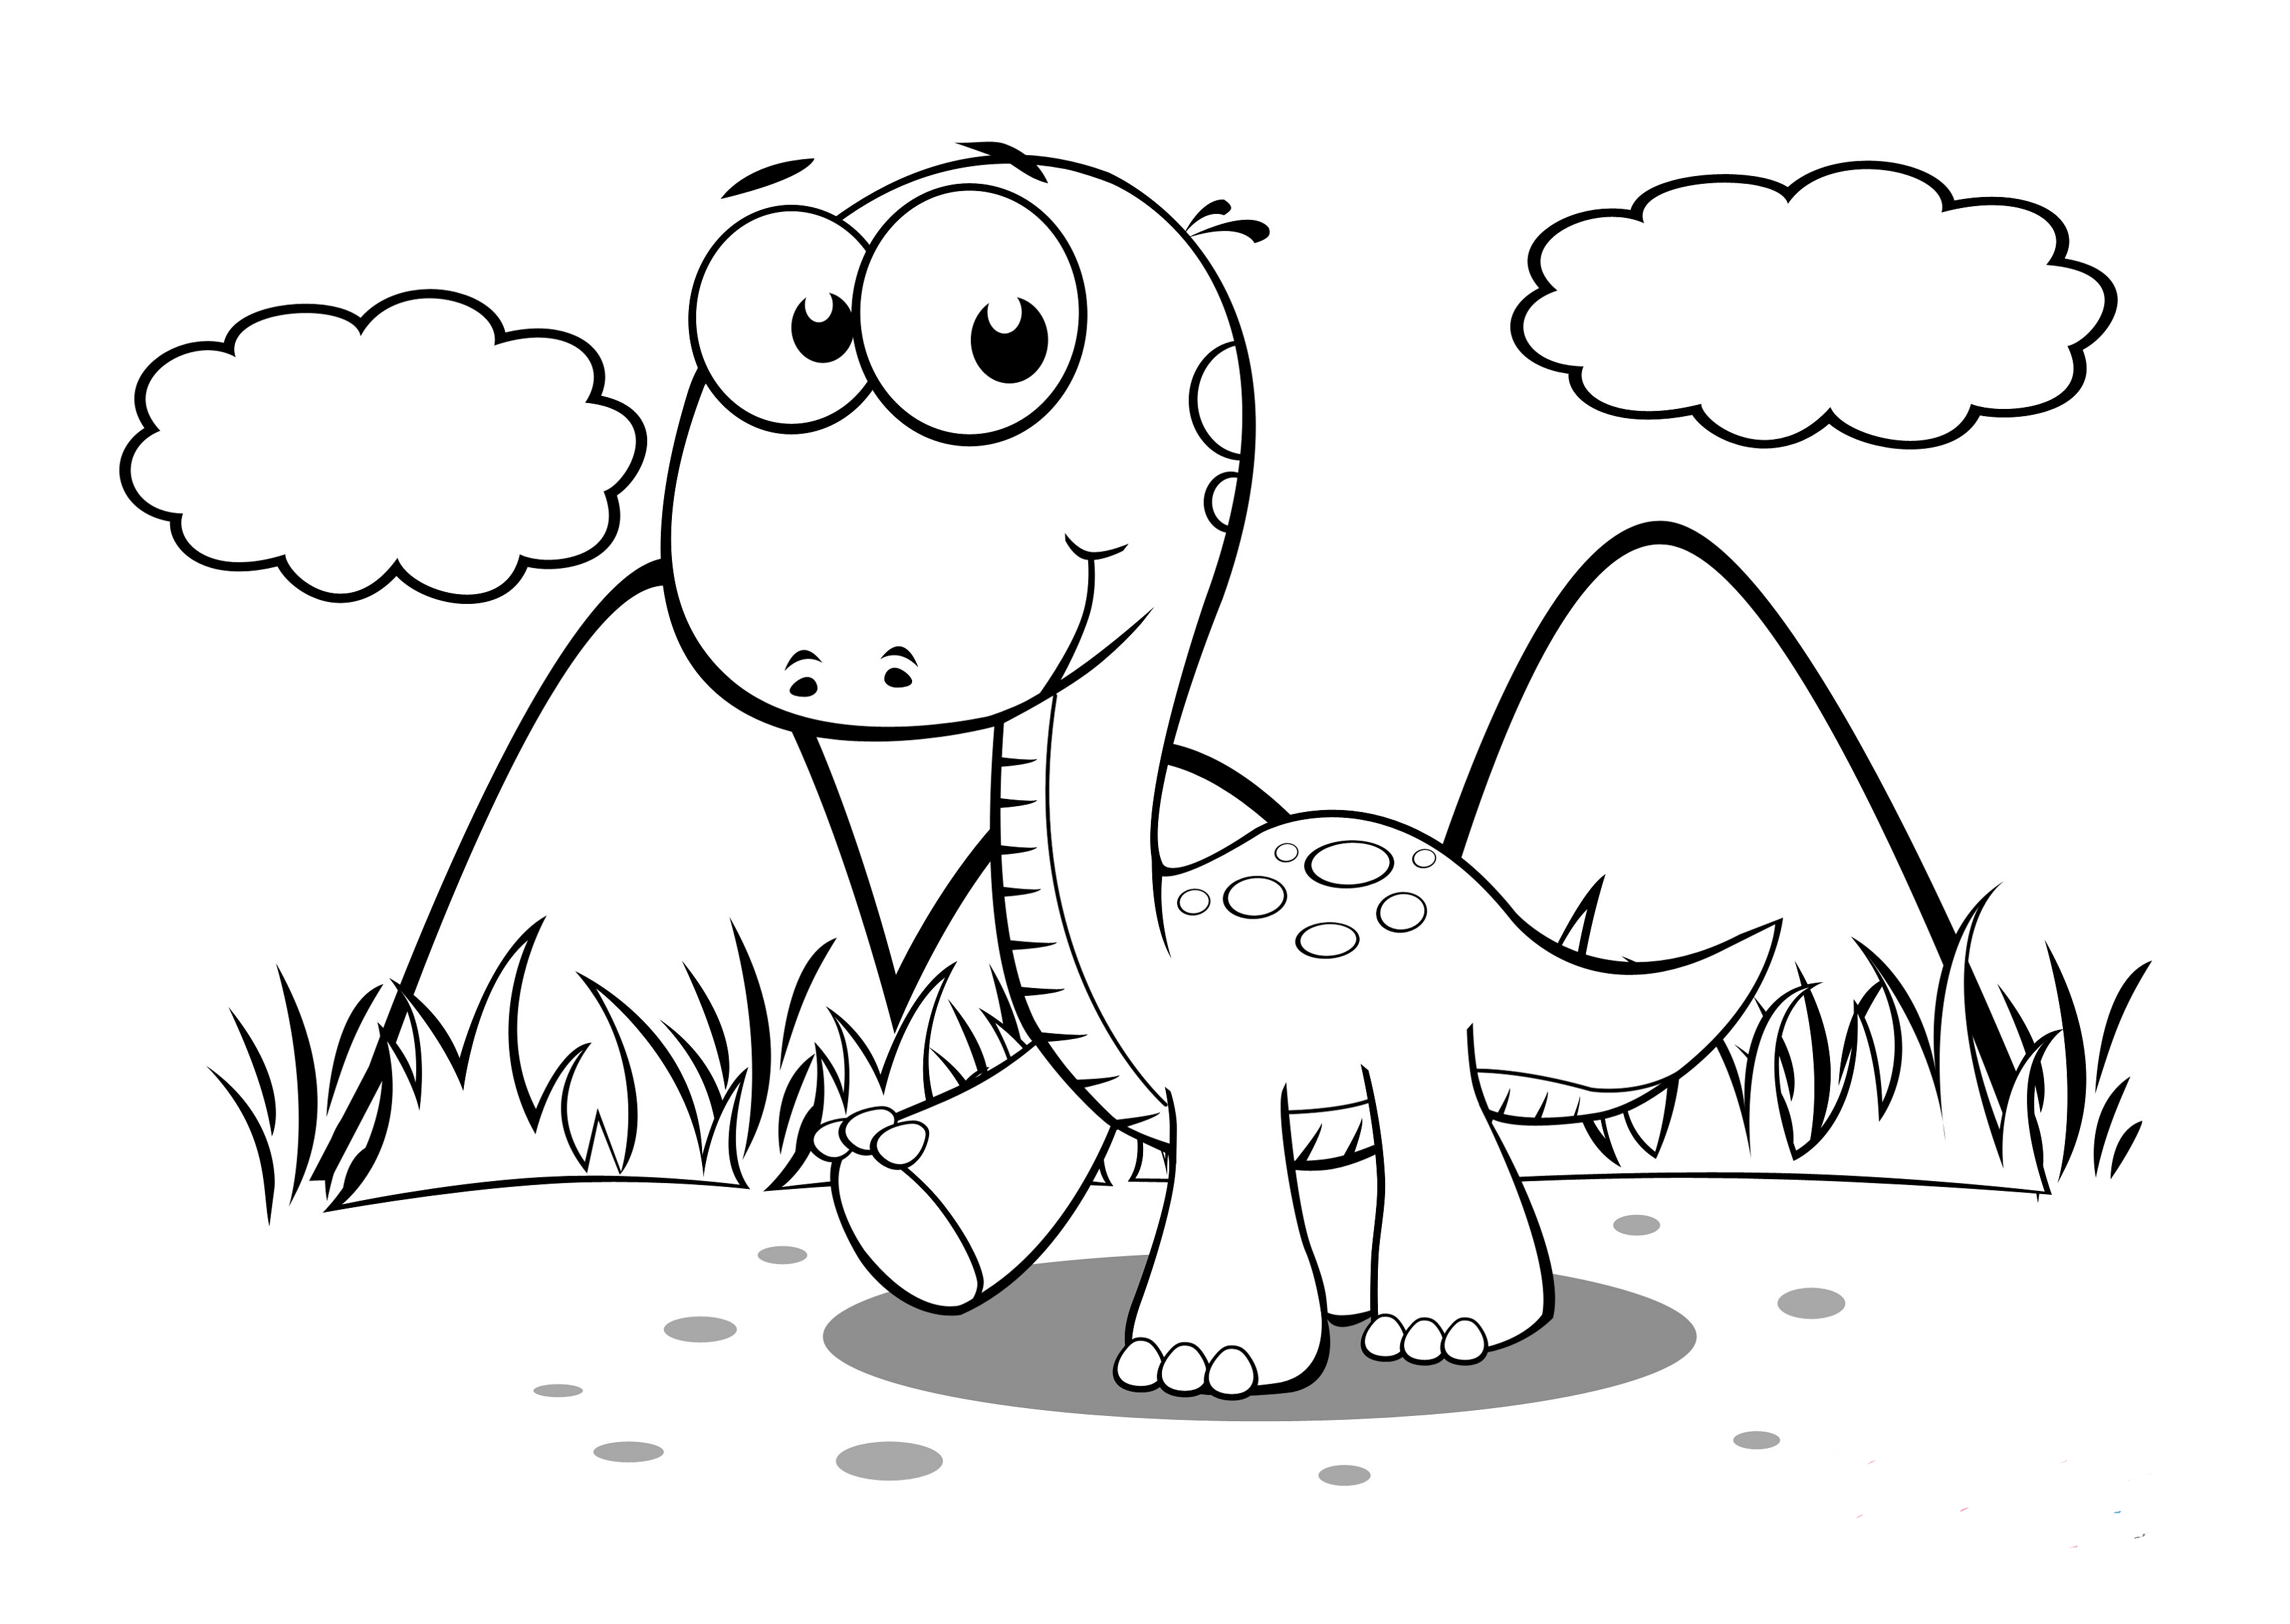 dinosaur coloring pages for kids free coloring pages printable pictures to color kids dinosaur for pages coloring kids